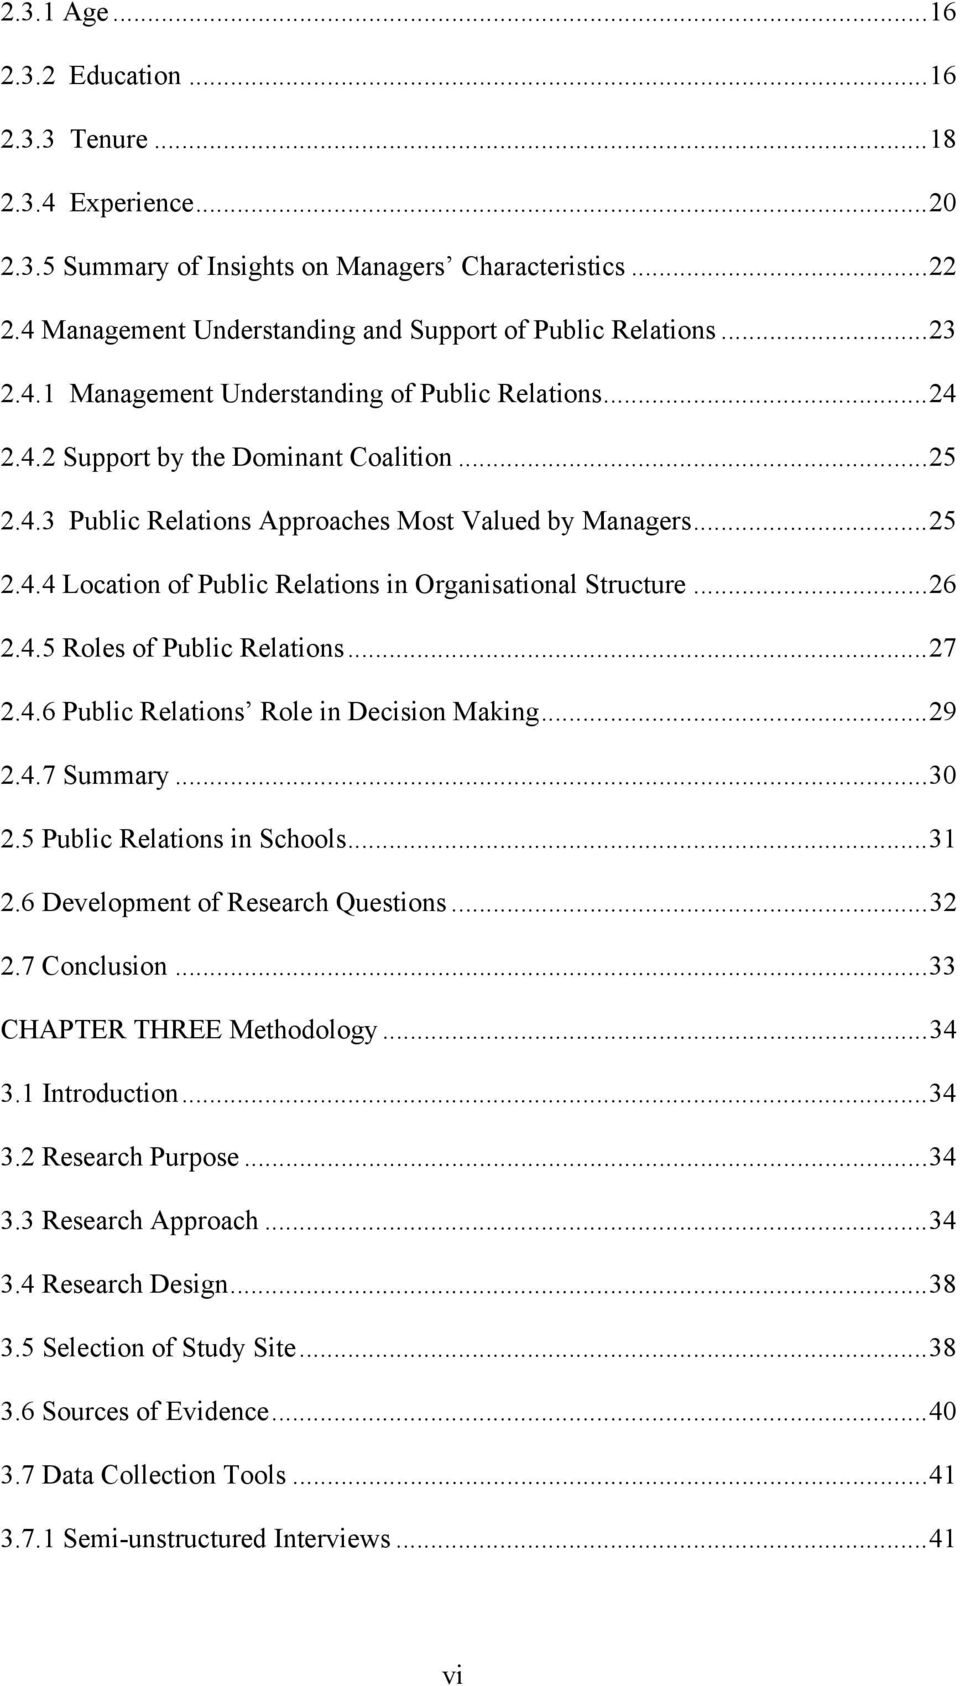 .. 25 2.4.4 Location of Public Relations in Organisational Structure... 26 2.4.5 Roles of Public Relations... 27 2.4.6 Public Relations Role in Decision Making... 29 2.4.7 Summary... 30 2.